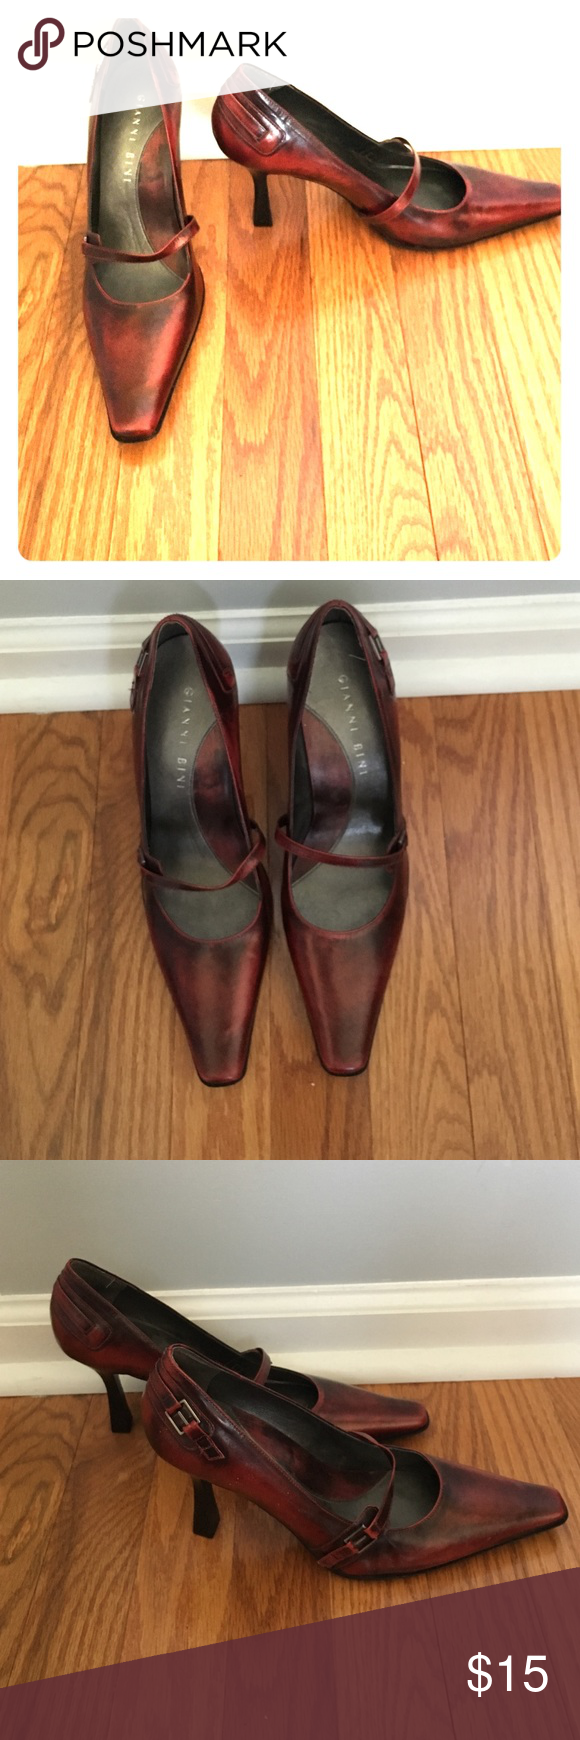 Gianni Bini red Mary Janes Red Mary Janes size 6.5, rarely worn and in great condition. Gianni Bini Shoes Heels